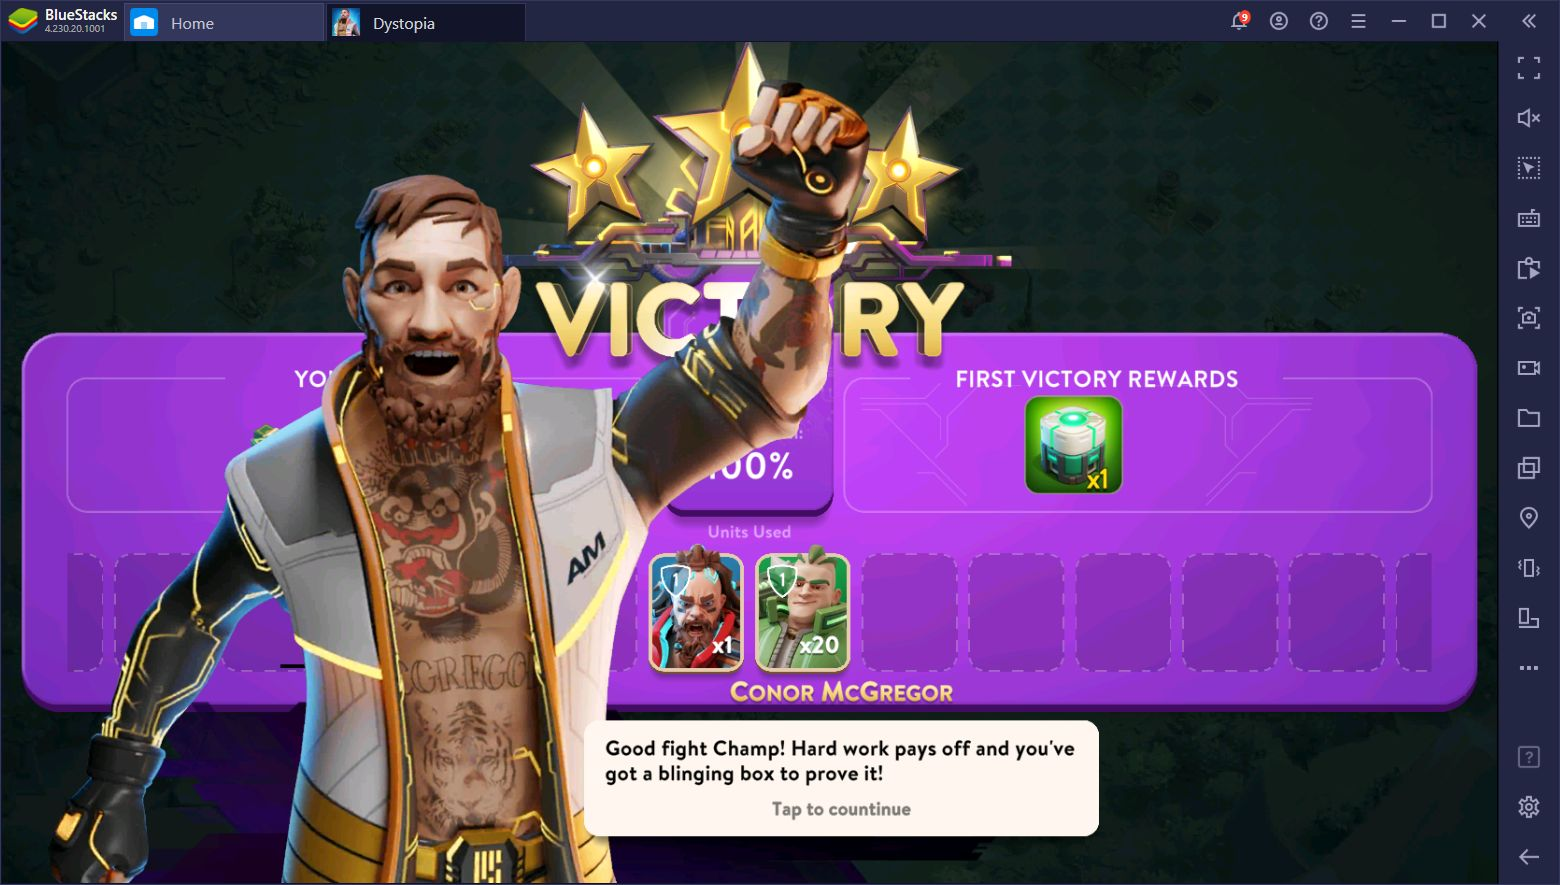 New Mobile Strategy Game 'Dystopia' Features UFC's Conor McGregor as Guest Star